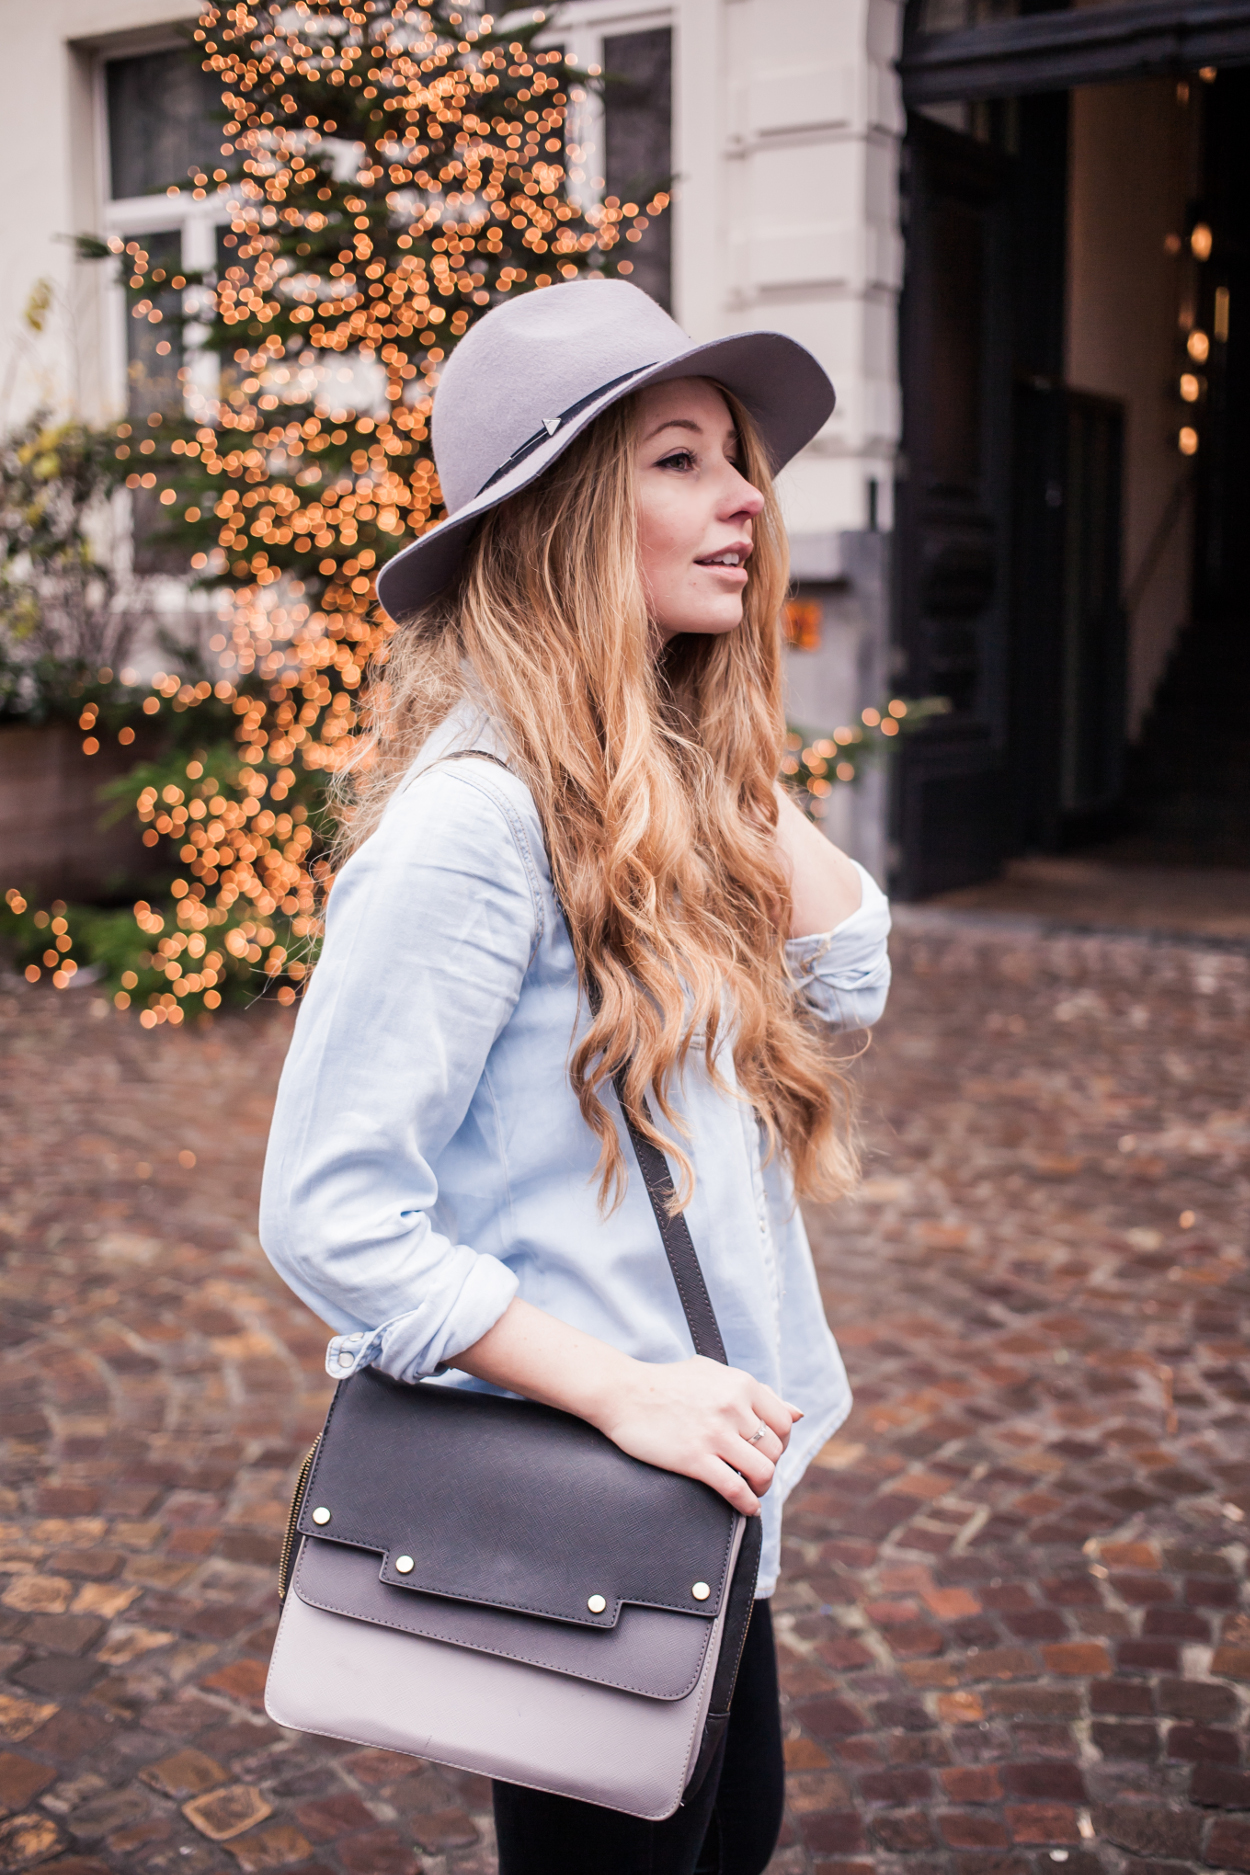 Dogs and Dresses furry coat grey hat outfit streetstyle